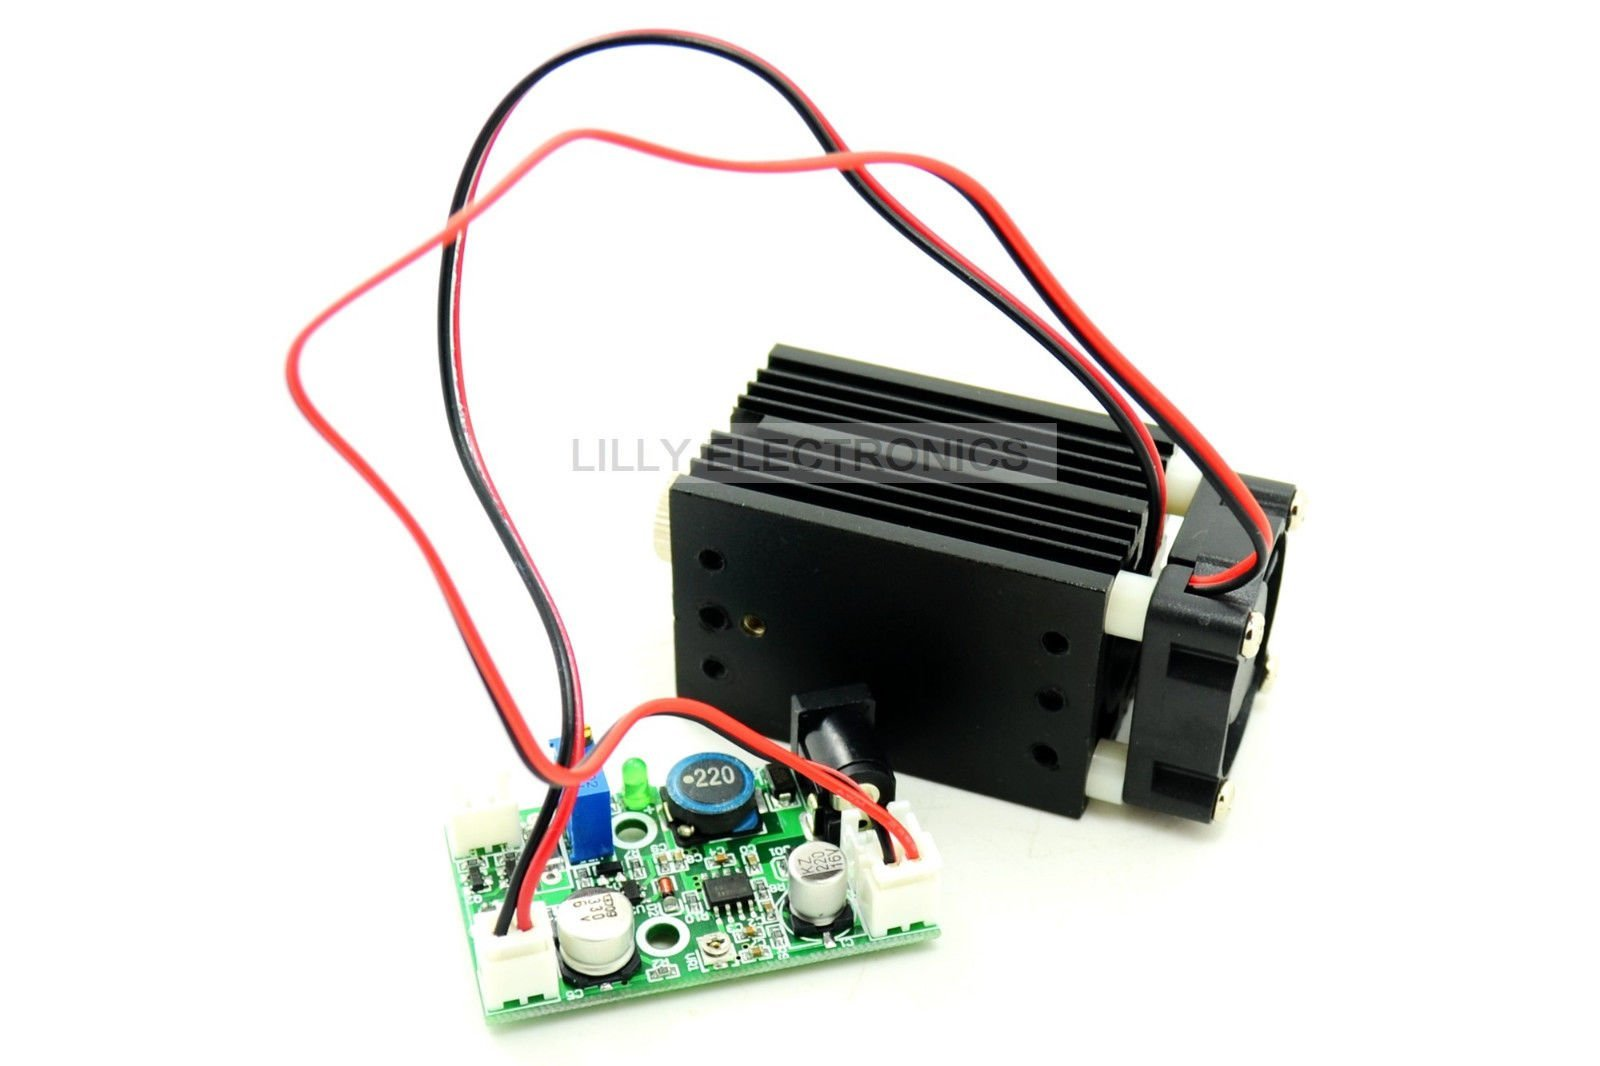 Q-BAIHE Focusable 450nm 2W 2000mw Blue Dot Laser Module W/Driver +TTL 5V for Wood Carving